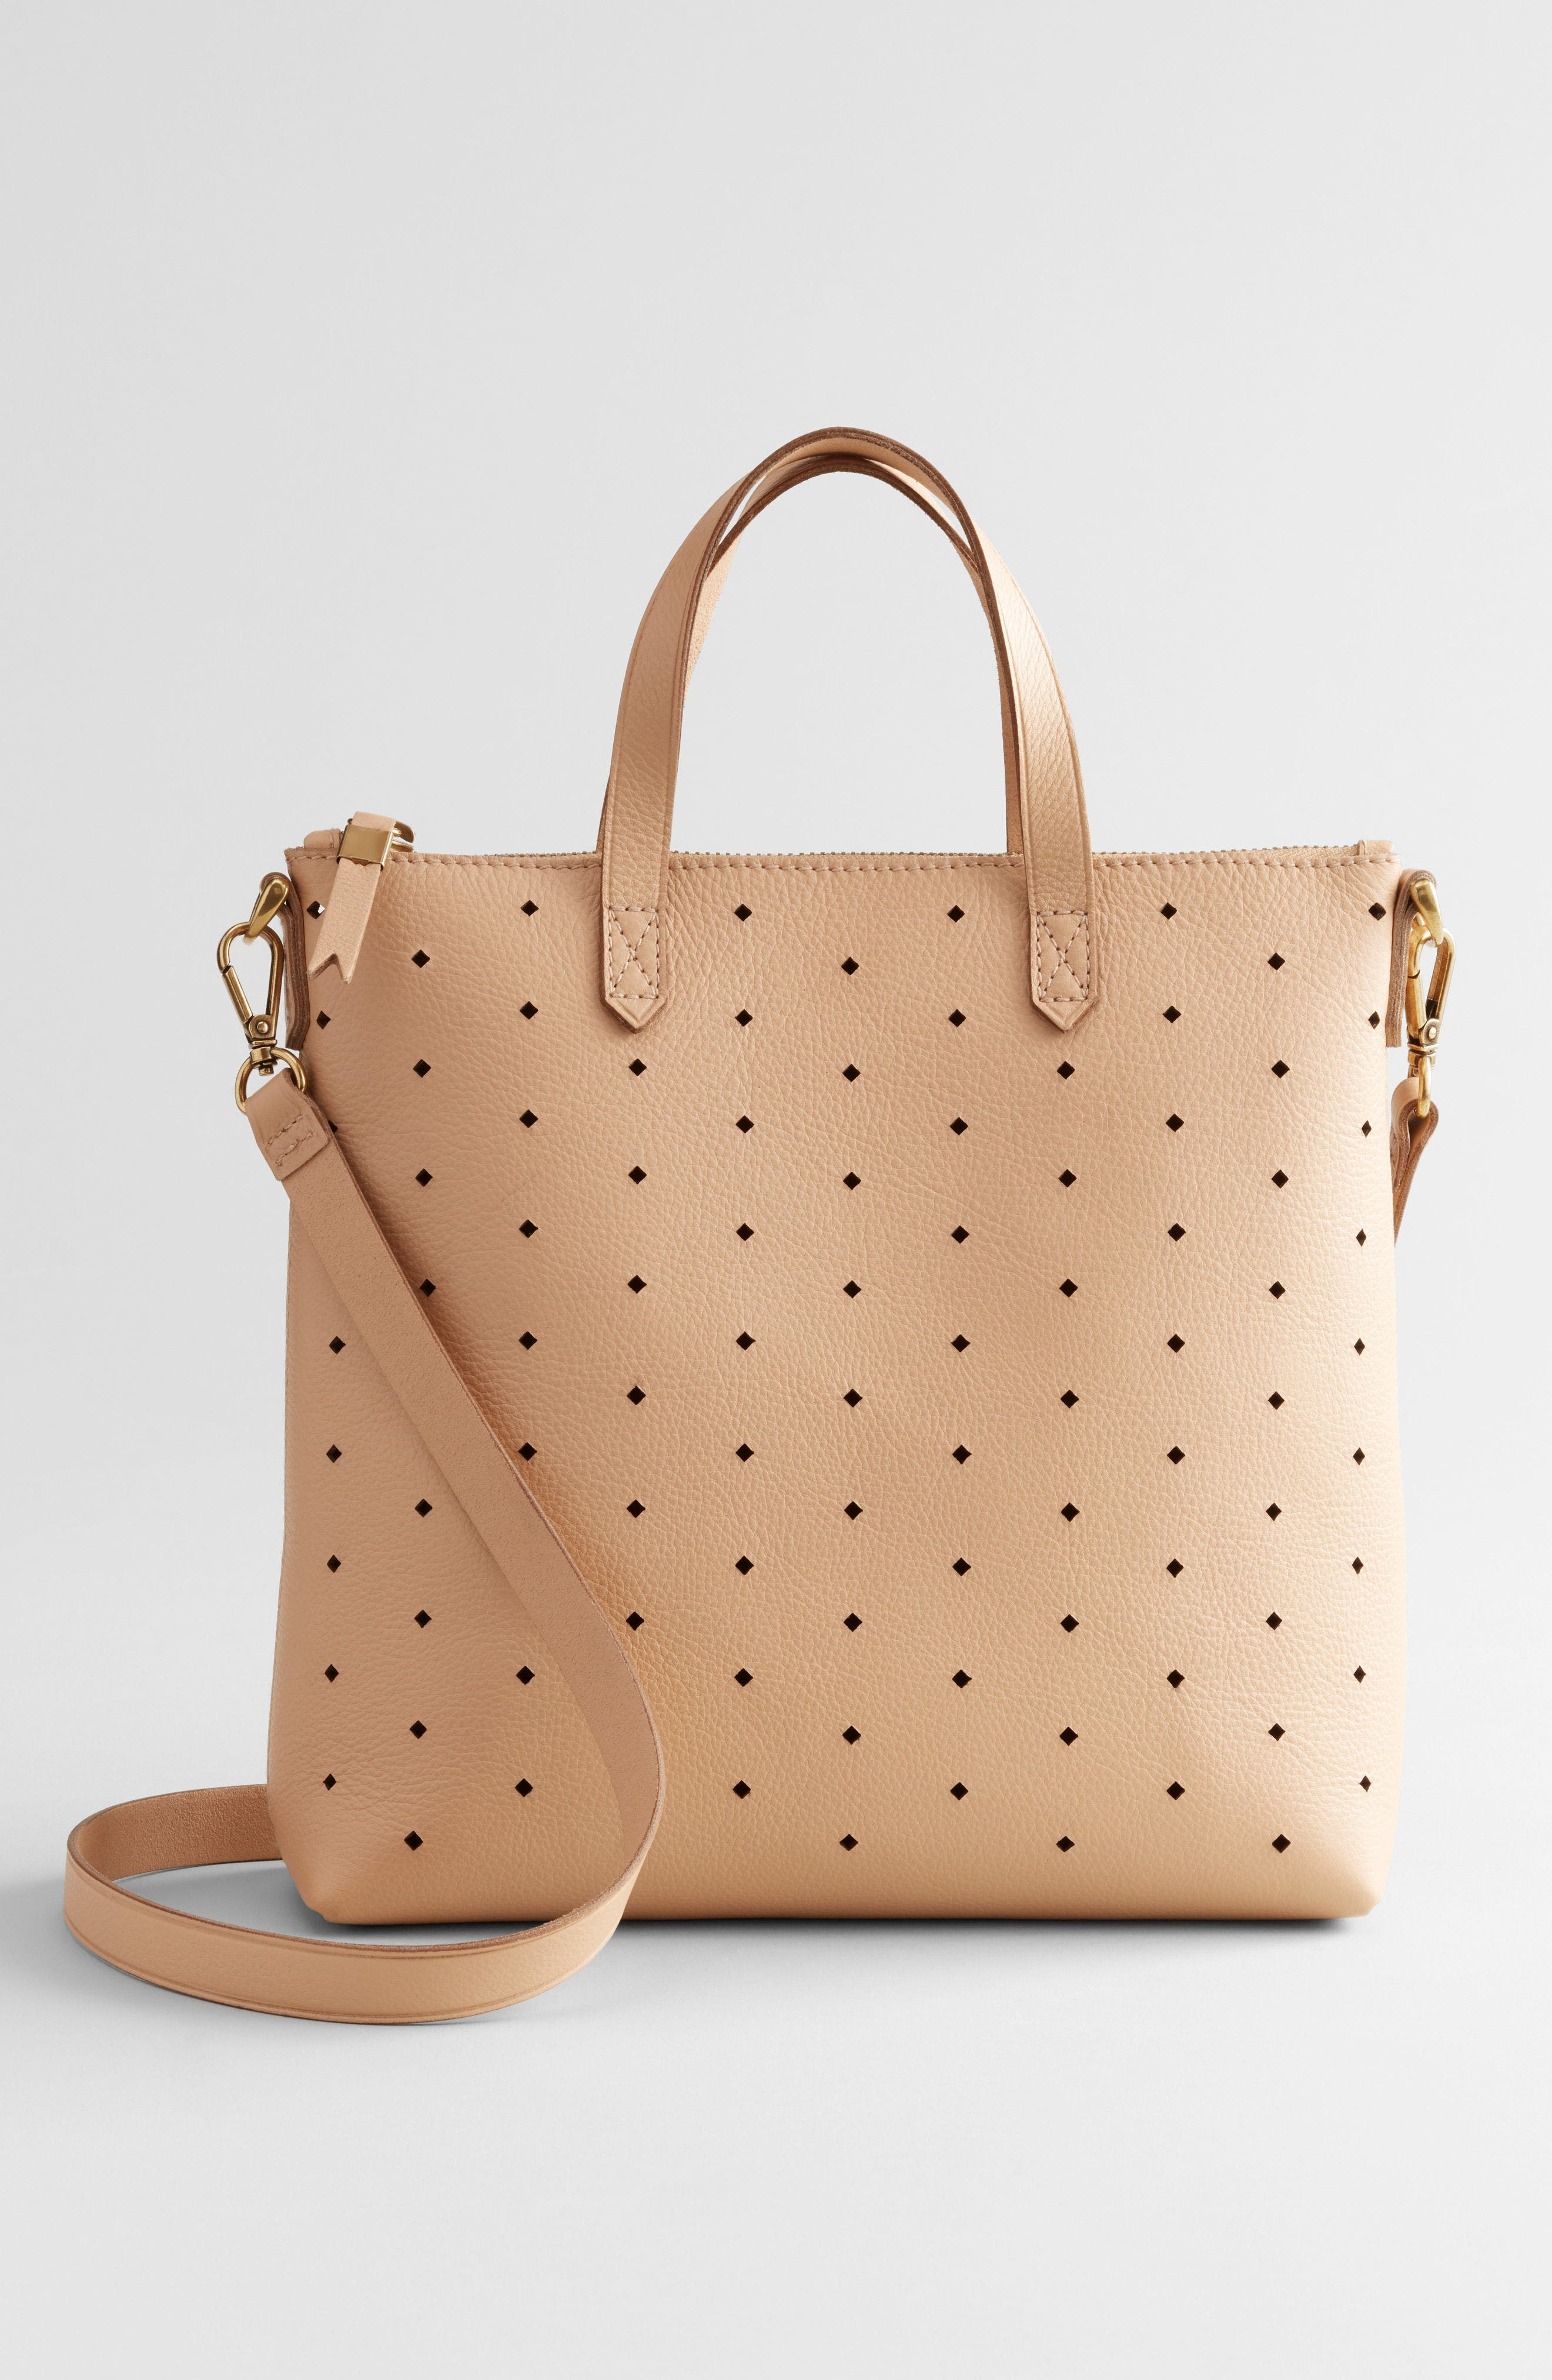 MADEWELL,                             Mini Transport Perforated Leather Crossbody Bag,                             Alternate thumbnail 8, color,                             250